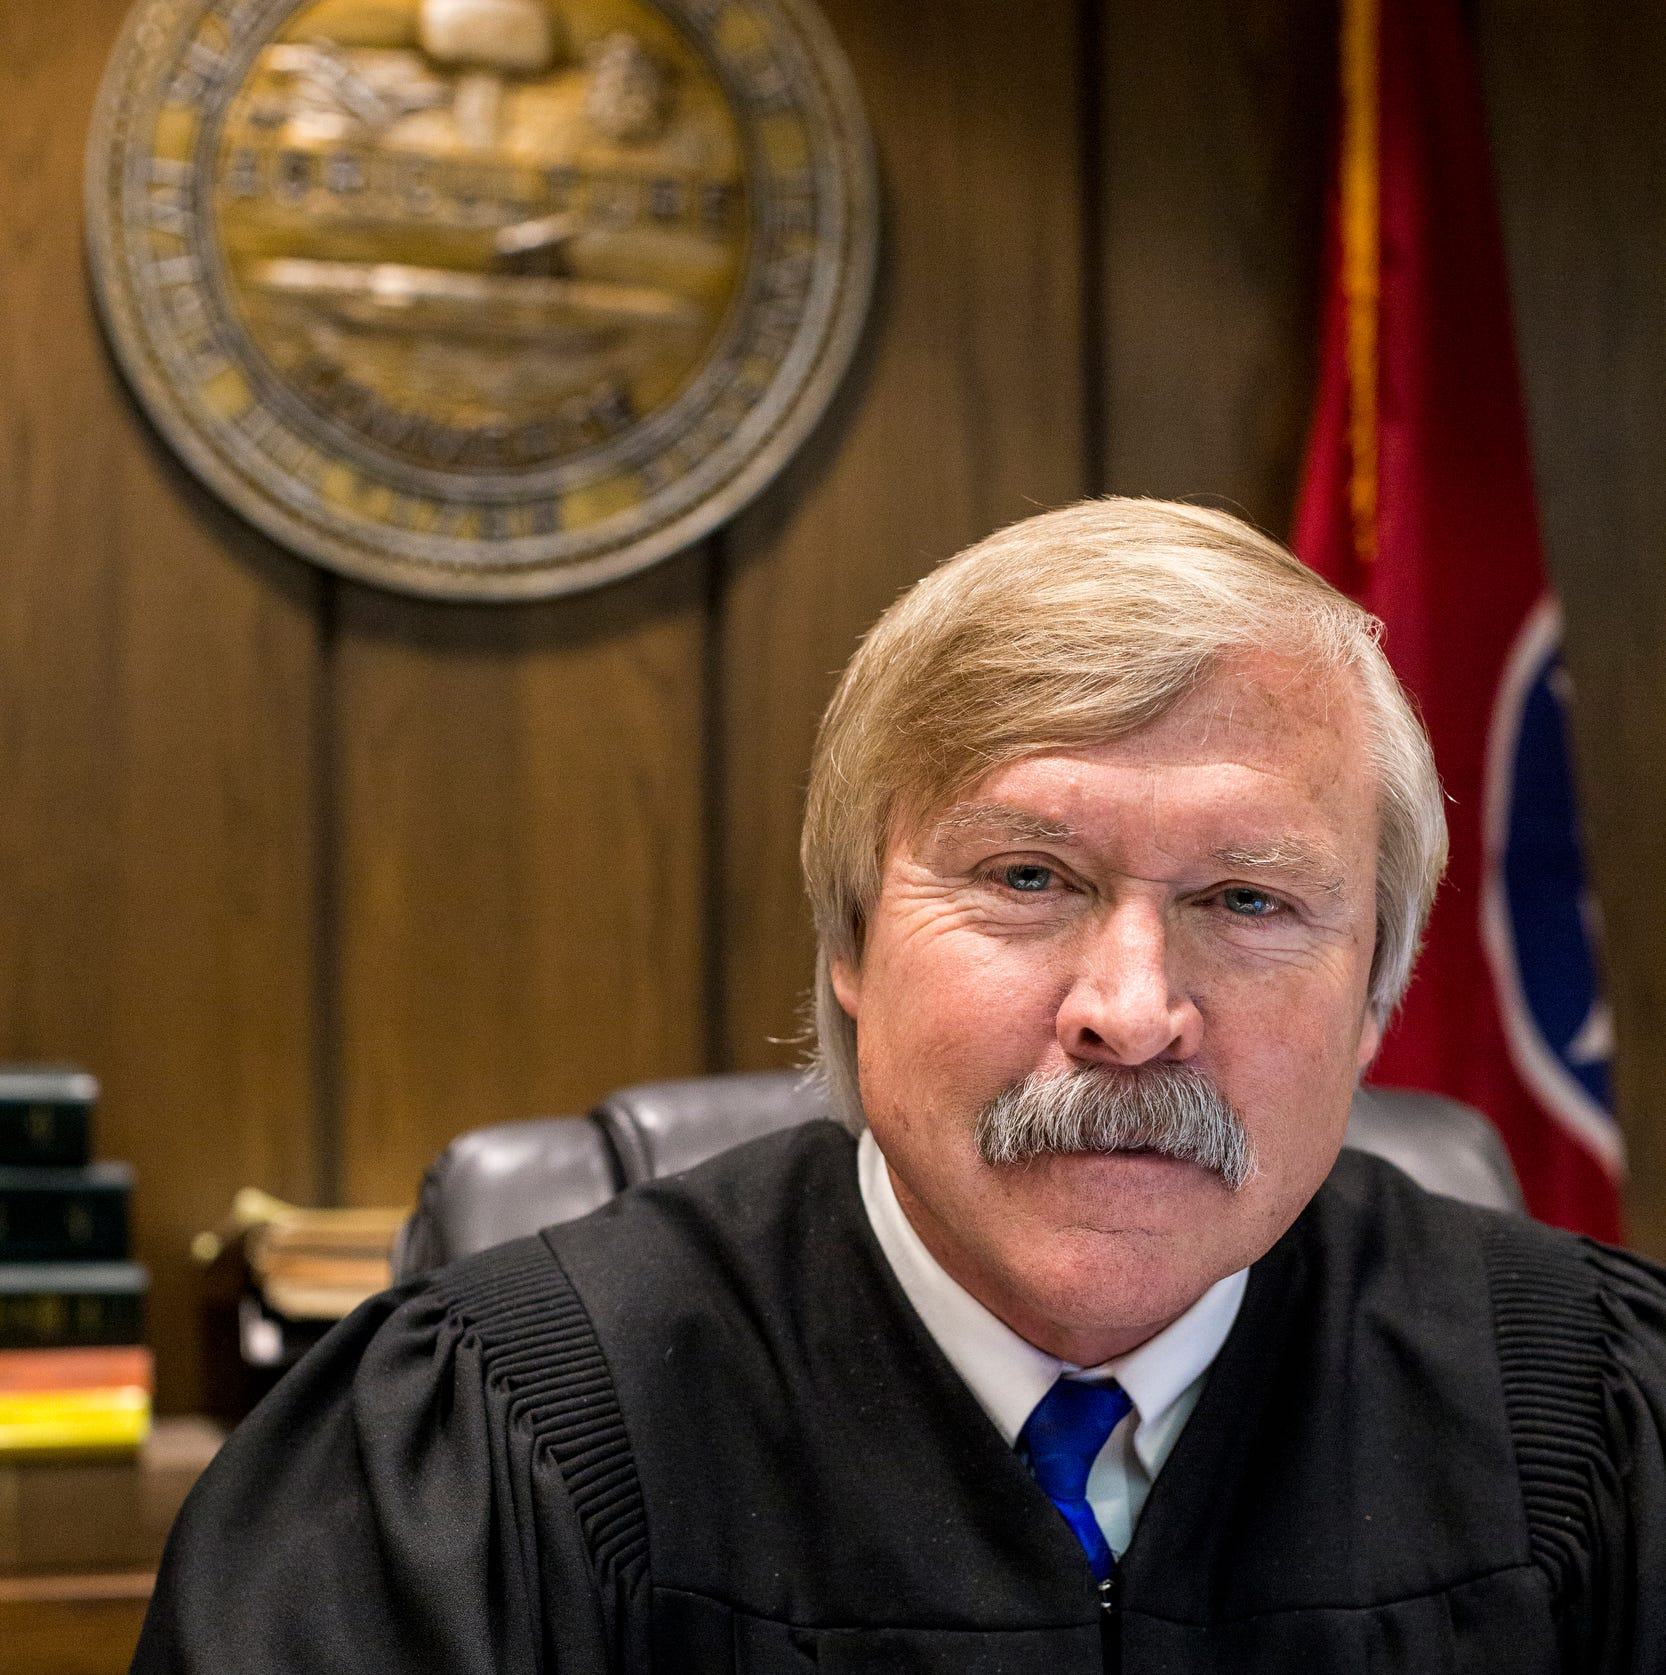 Memphis judge posts Facebook link to Holocaust denier's essay calling immigrants 'foreign mud'